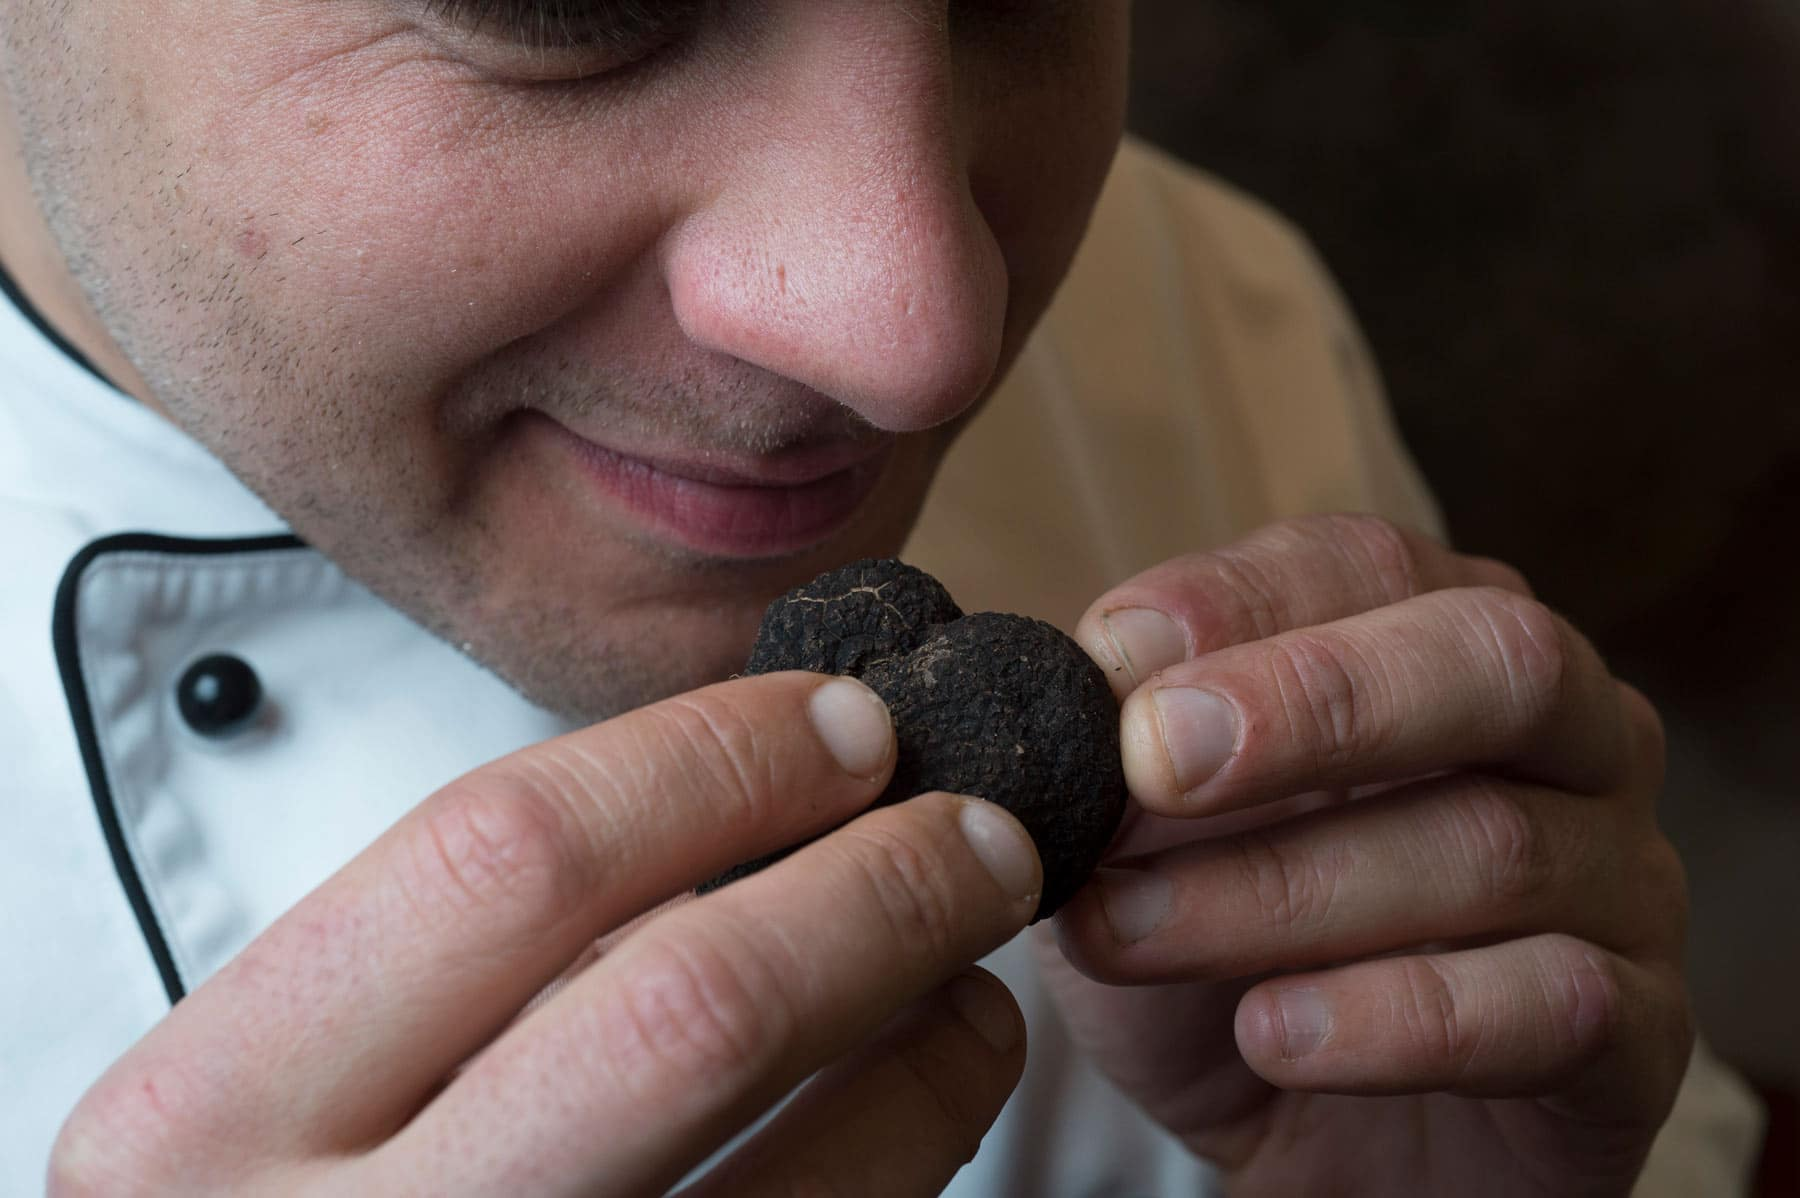 A man smells a whole black winter Canberra truffle